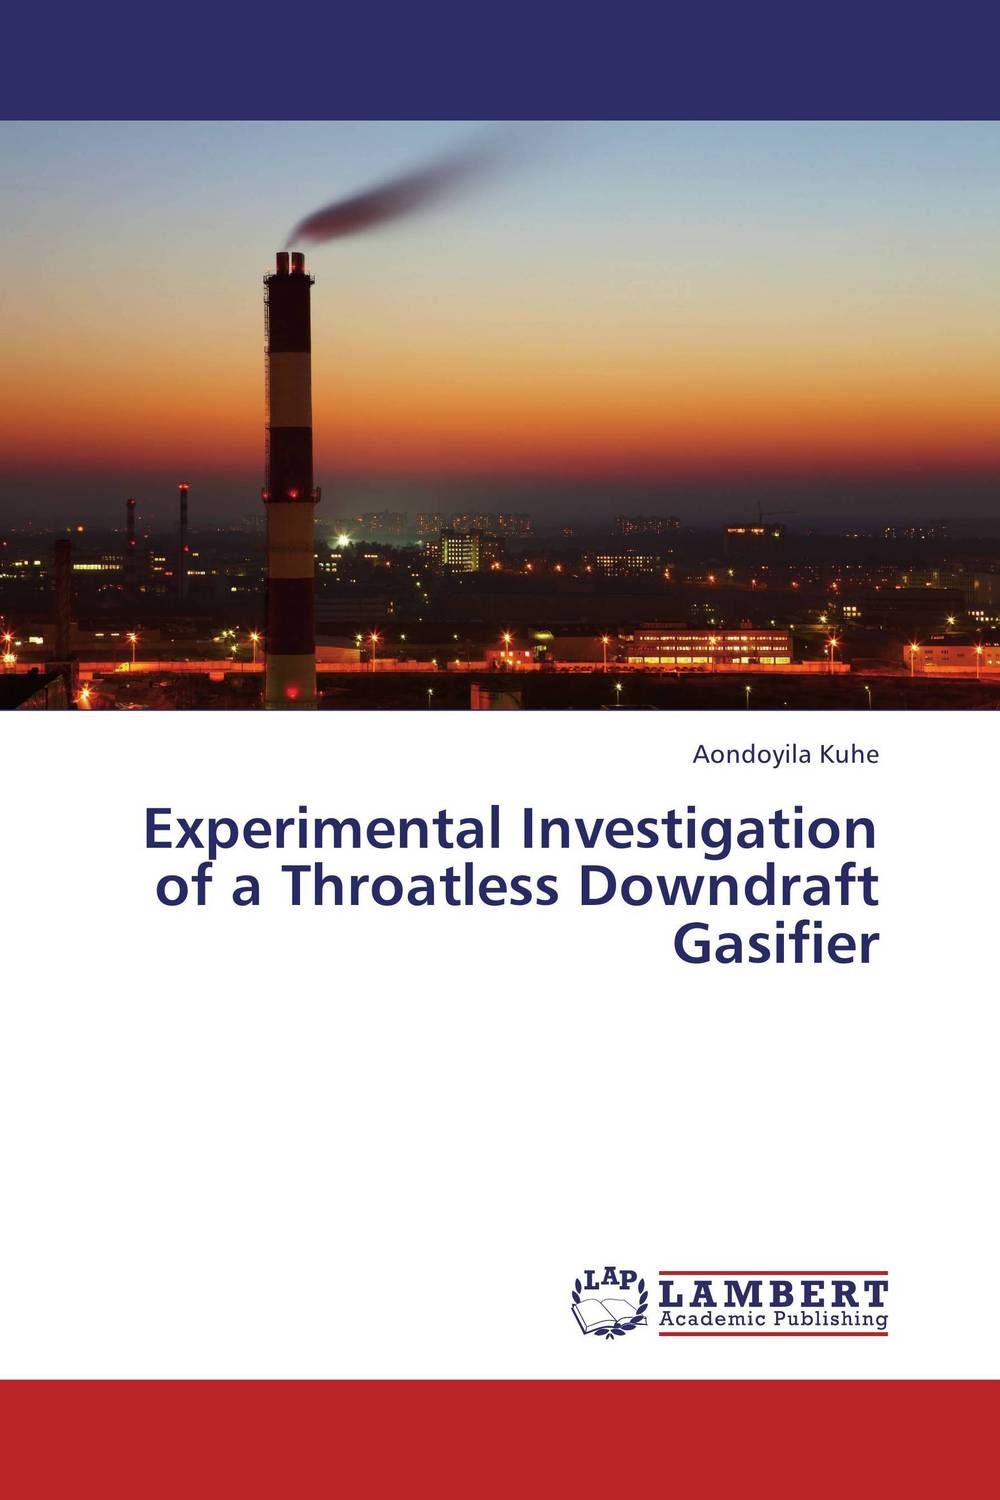 Experimental Investigation of a Throatless Downdraft Gasifier a a antonopoulos biotechnological advances in processing municipal wastes for fuels and chemicals